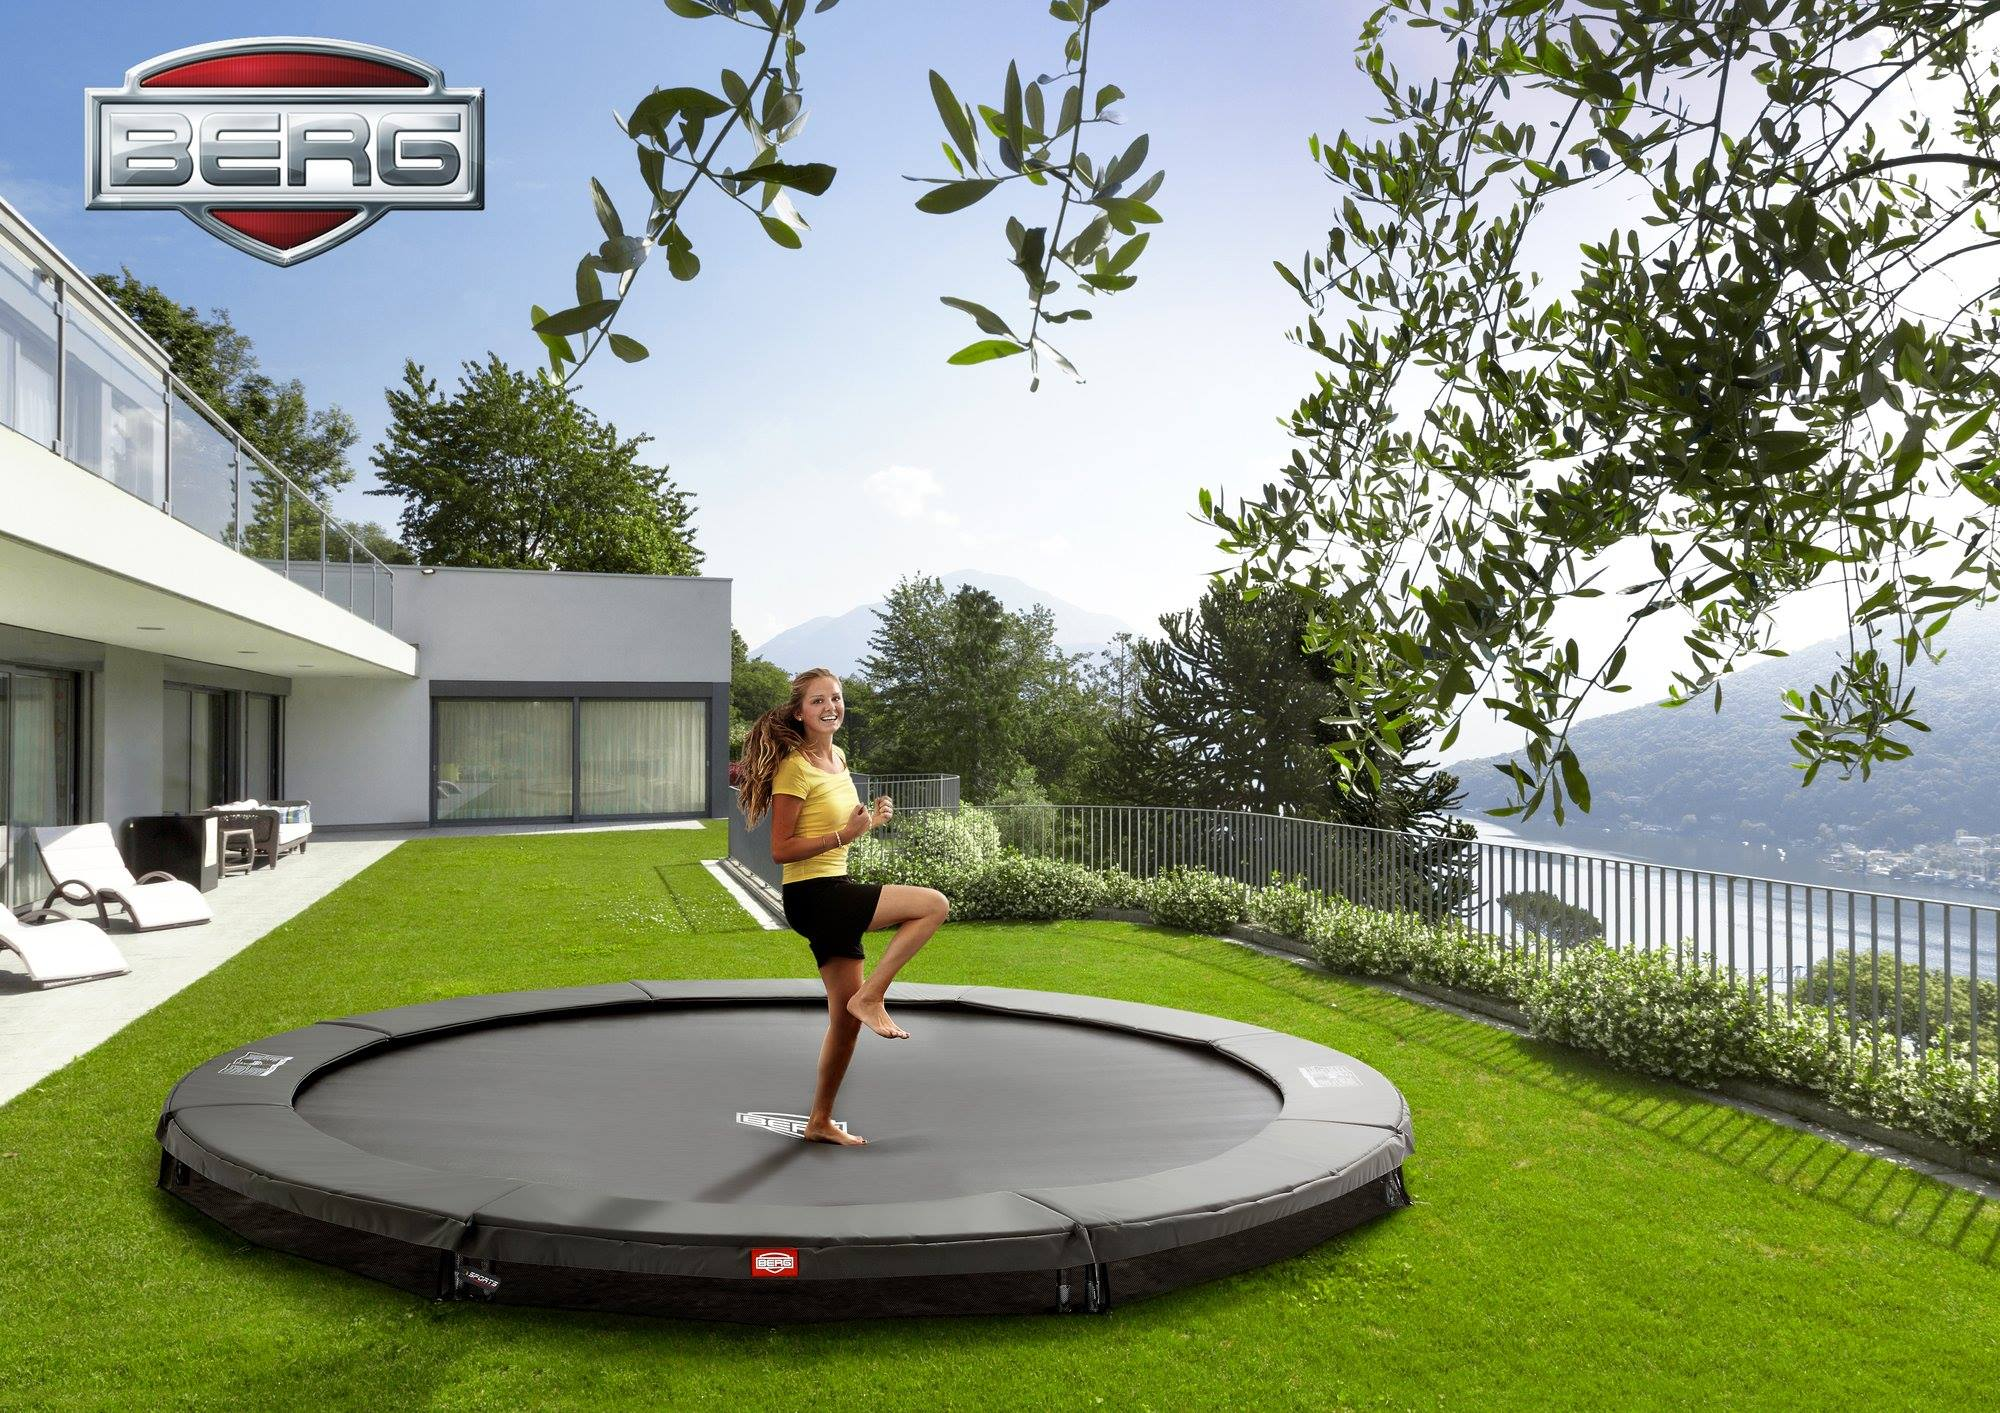 If you are thinking of investing in a BERG trampoline this year, here is some information you may need to know